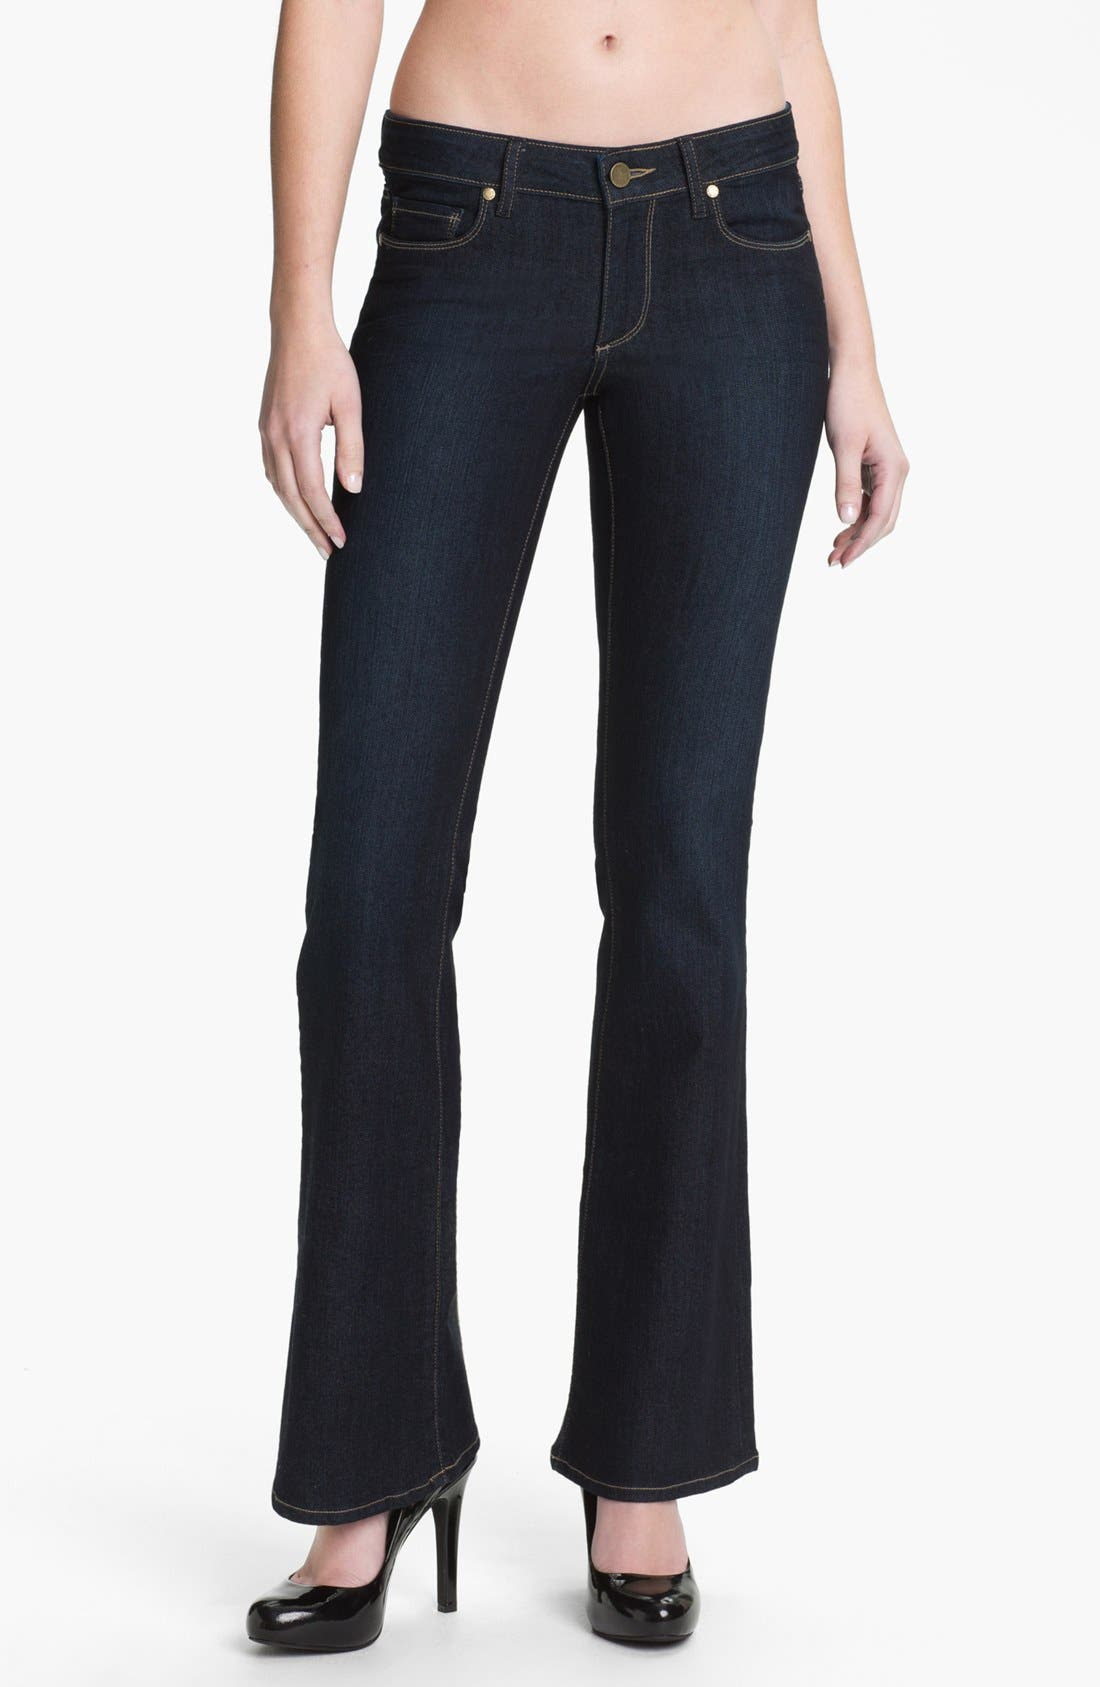 Alternate Image 1 Selected - Paige Denim 'Skyline' Bootcut Stretch Denim Jeans (Michelle)